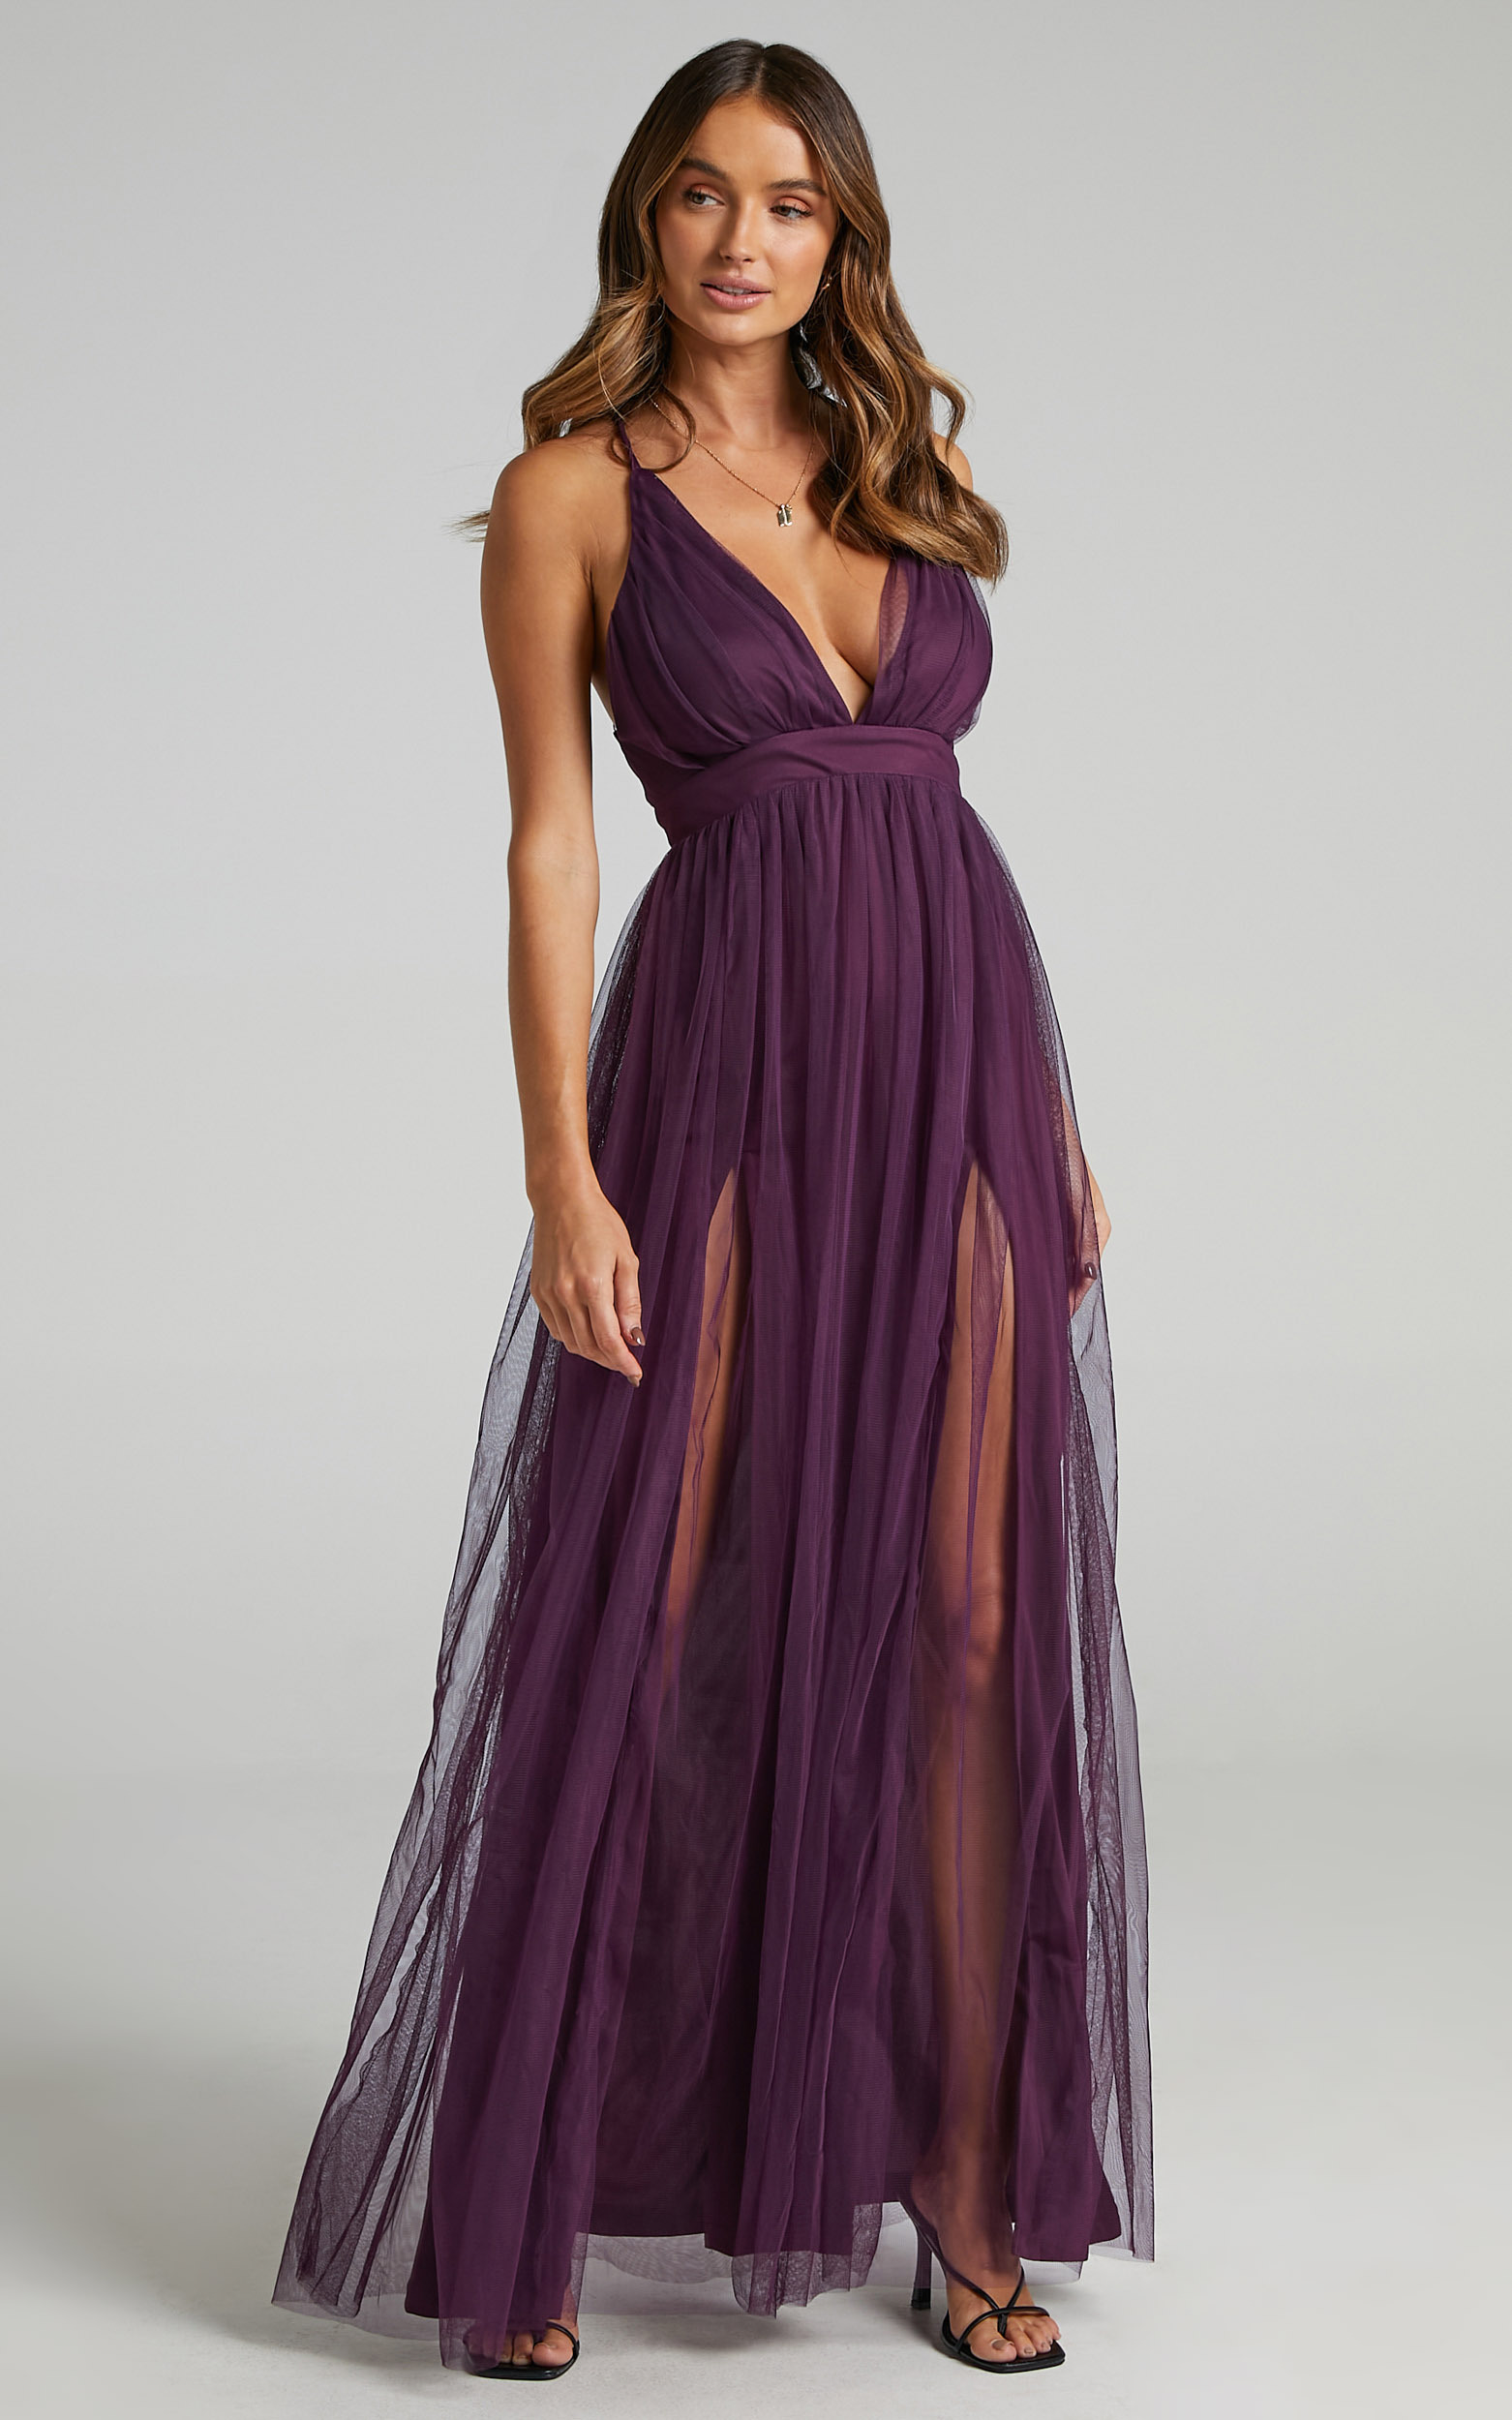 Like A Vision Plunge Maxi Dress in Aubergine Tulle - 20, PRP4, hi-res image number null